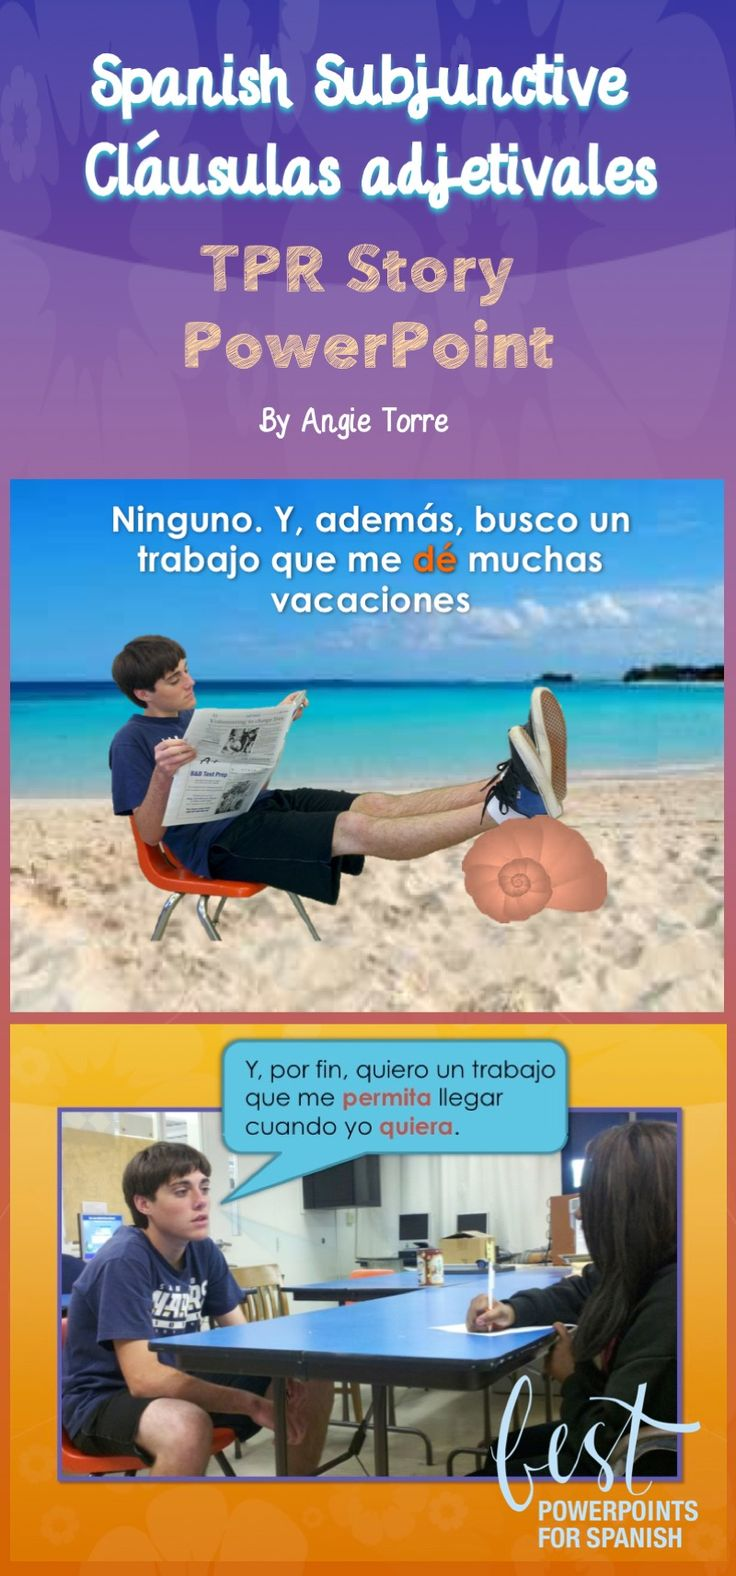 This 25-slide Subjunctive Cláusulas Adjetivales TPR Story PowerPoint provides many examples of the Spanish subjunctive with cláusulas adjetivales. Paco, in his search for a job, goes to visit he career counselor. She asks him questions to help him decide what career to pursue. In the end, he does not get a job but he does get something from the counselor. Also included: activity in which students answer true or false; the password to open the Subjunctive PowerPoint